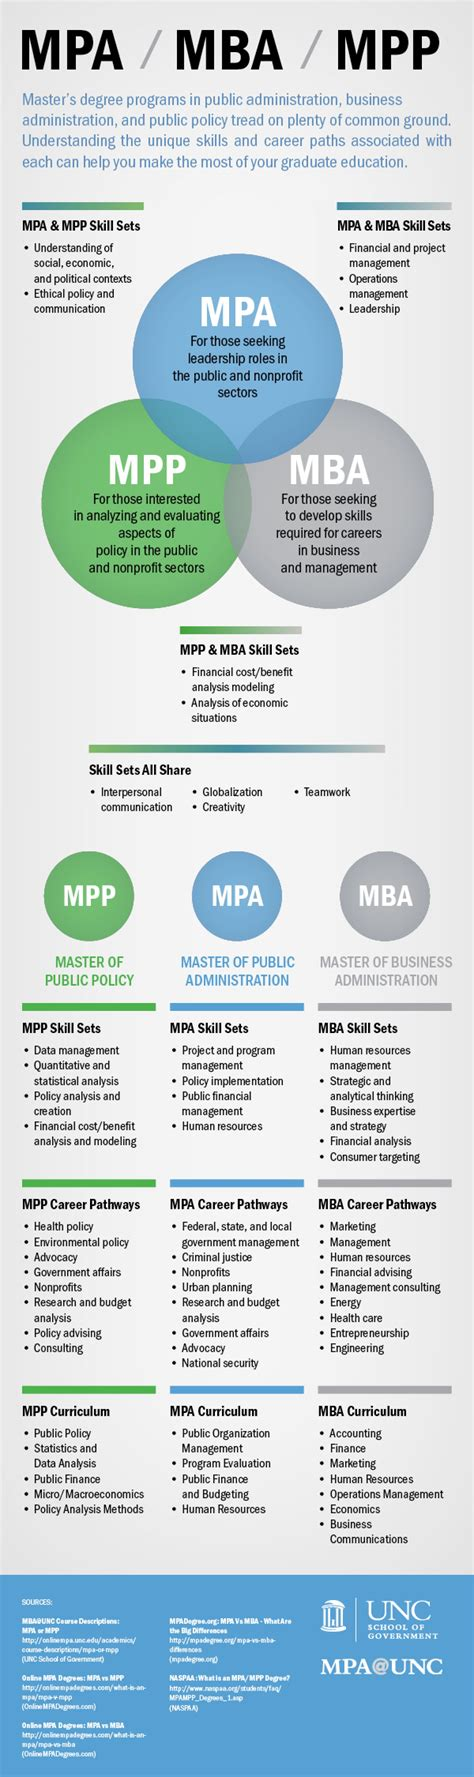 Mpa Or Mba Which Is Better mpa or mba which is better